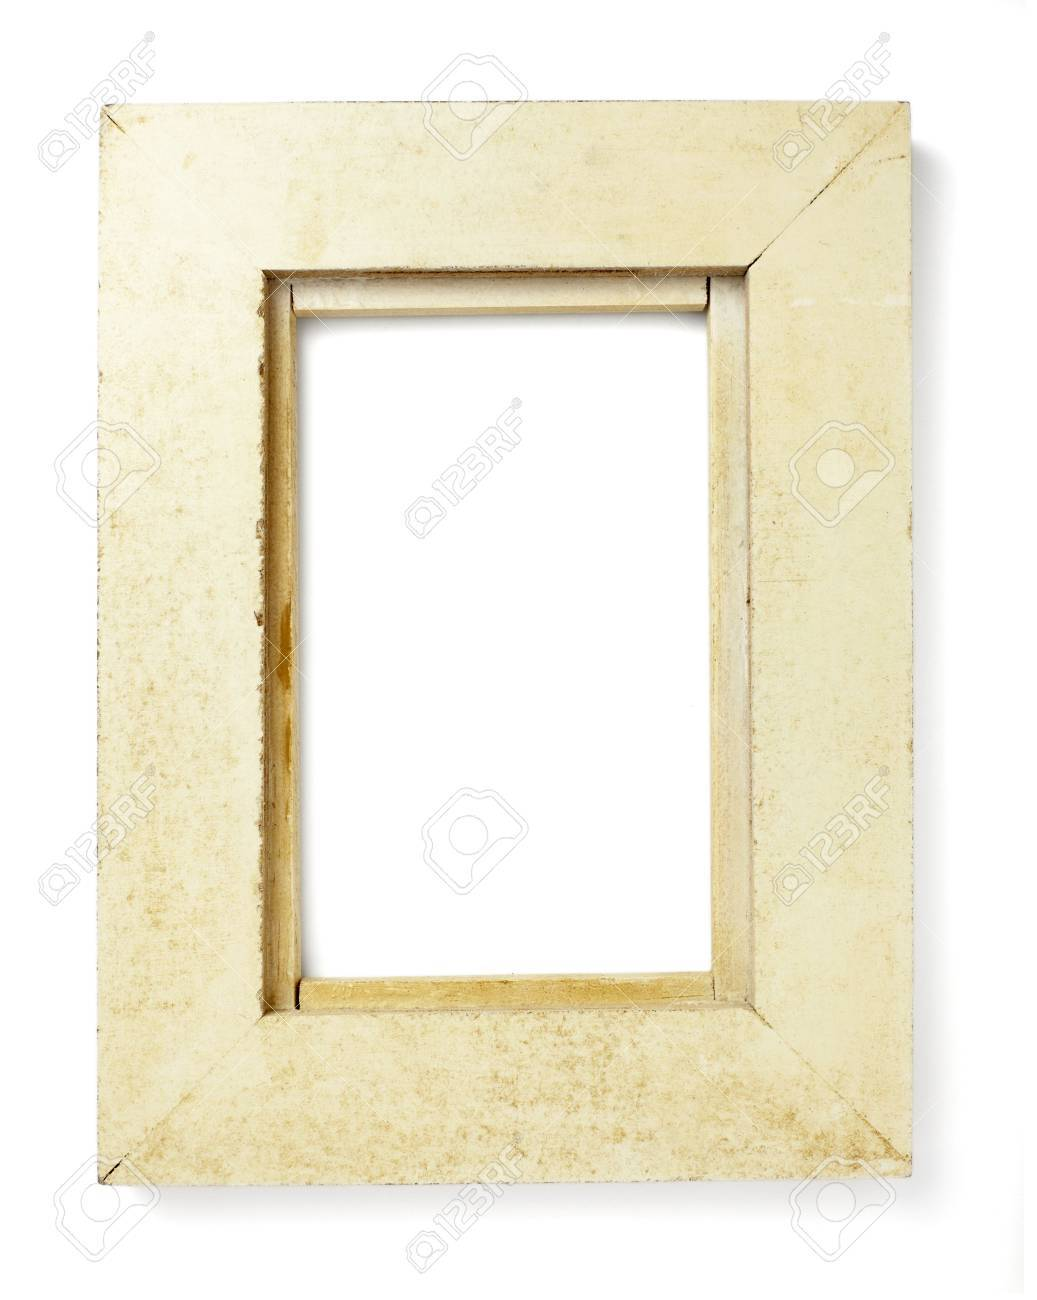 wooden frame for painting or picture on white background with clipping path Stock Photo - 6353235